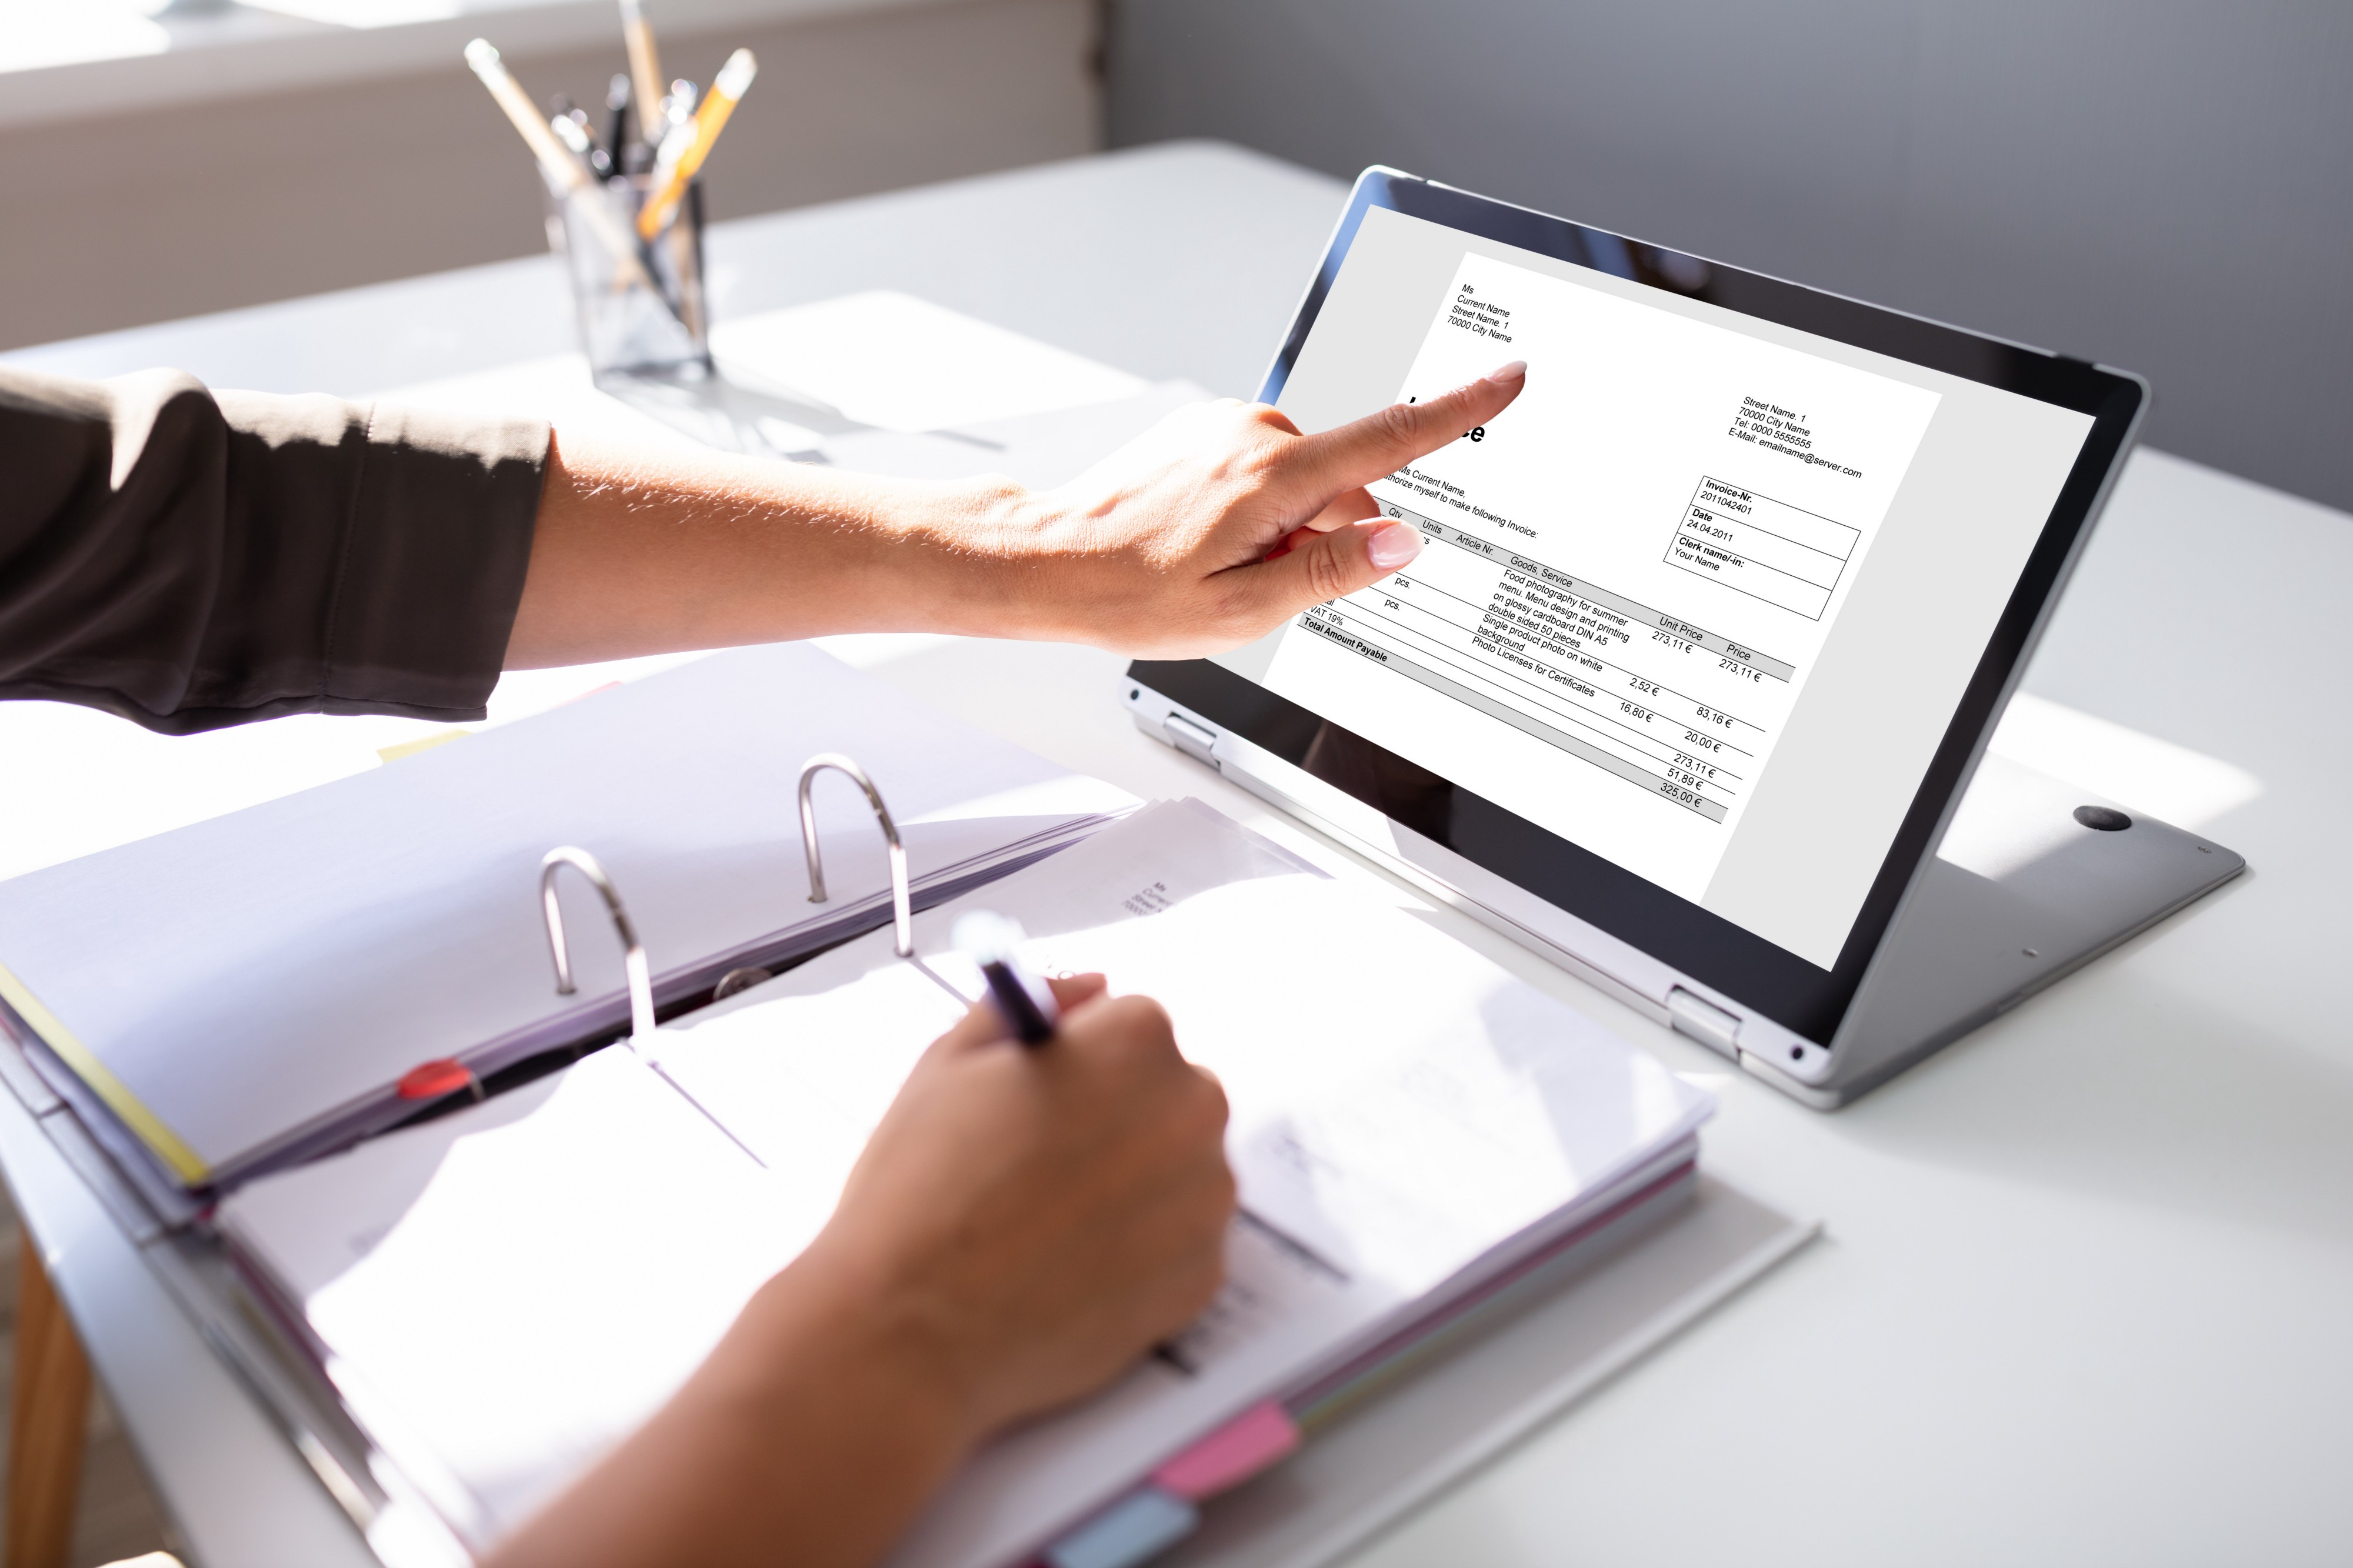 Person running finger down invoice on laptop screen taking notes on paper in a binder